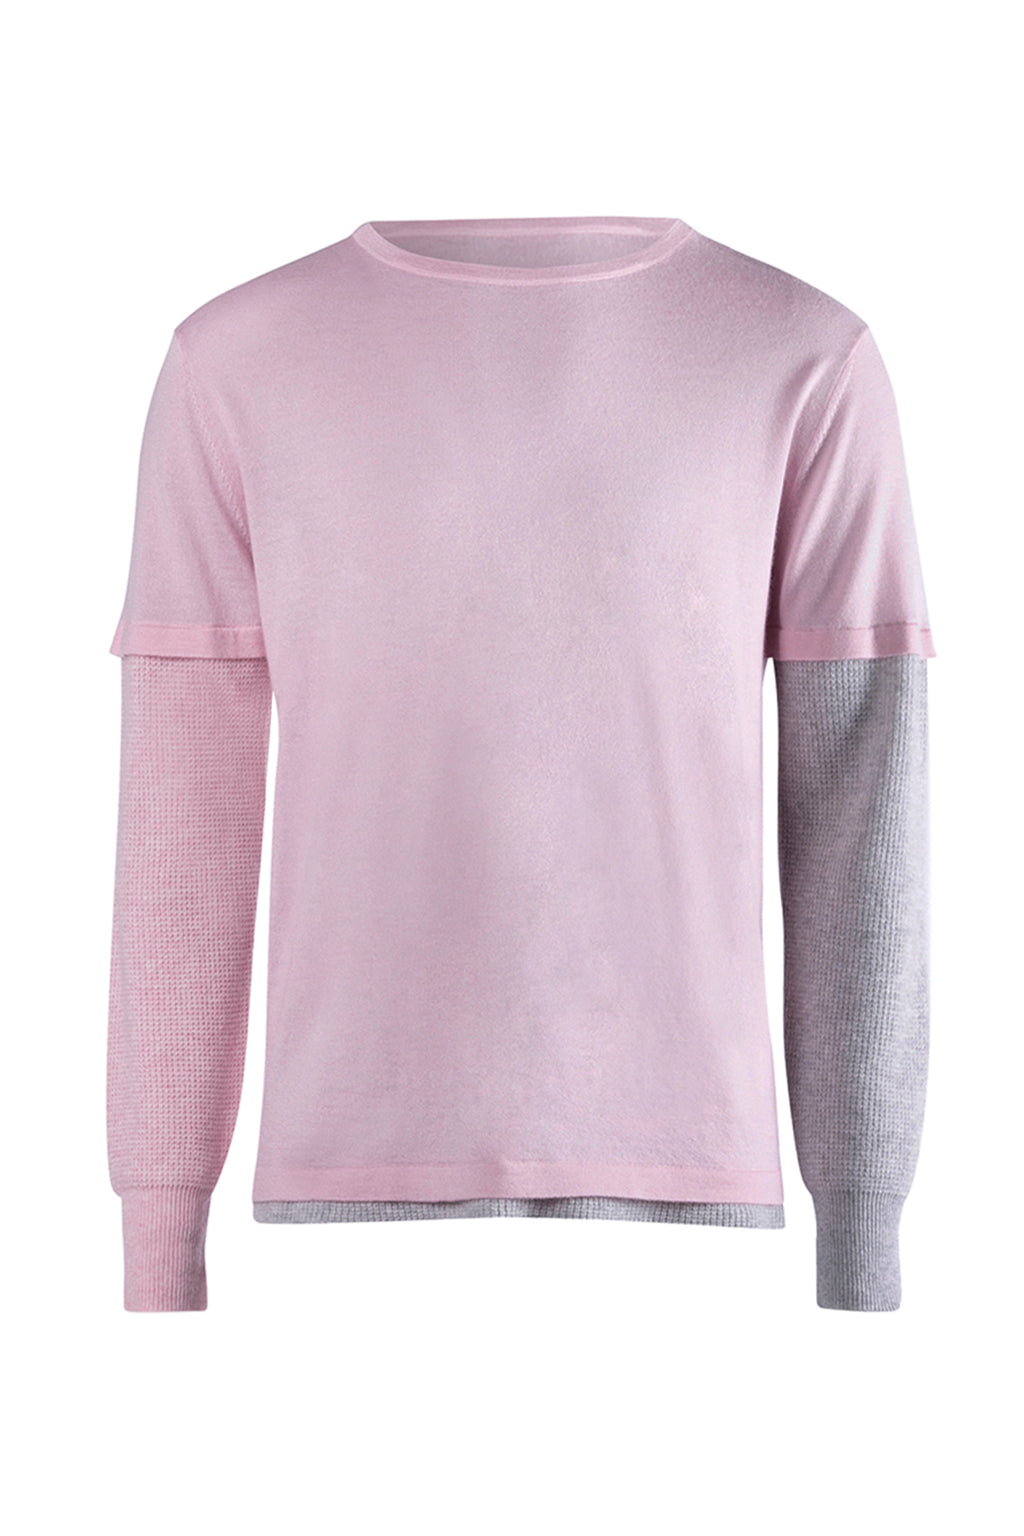 ISM Cashmere Waffle Long Sleeve Light Pink/Grey